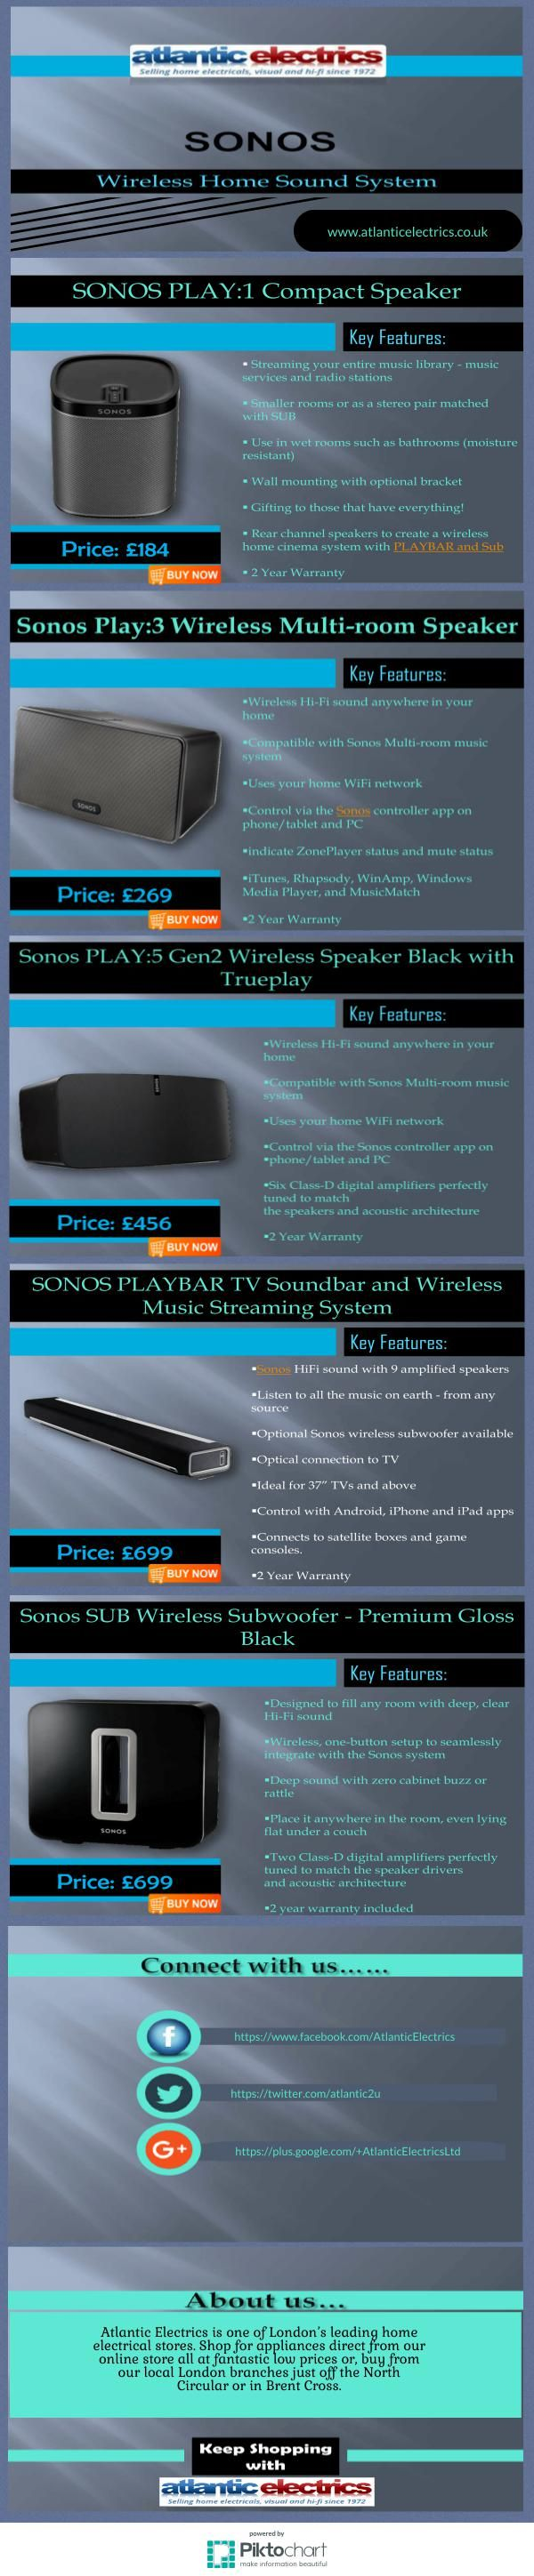 Sonos wireless home sound system at Atlantic Electrics